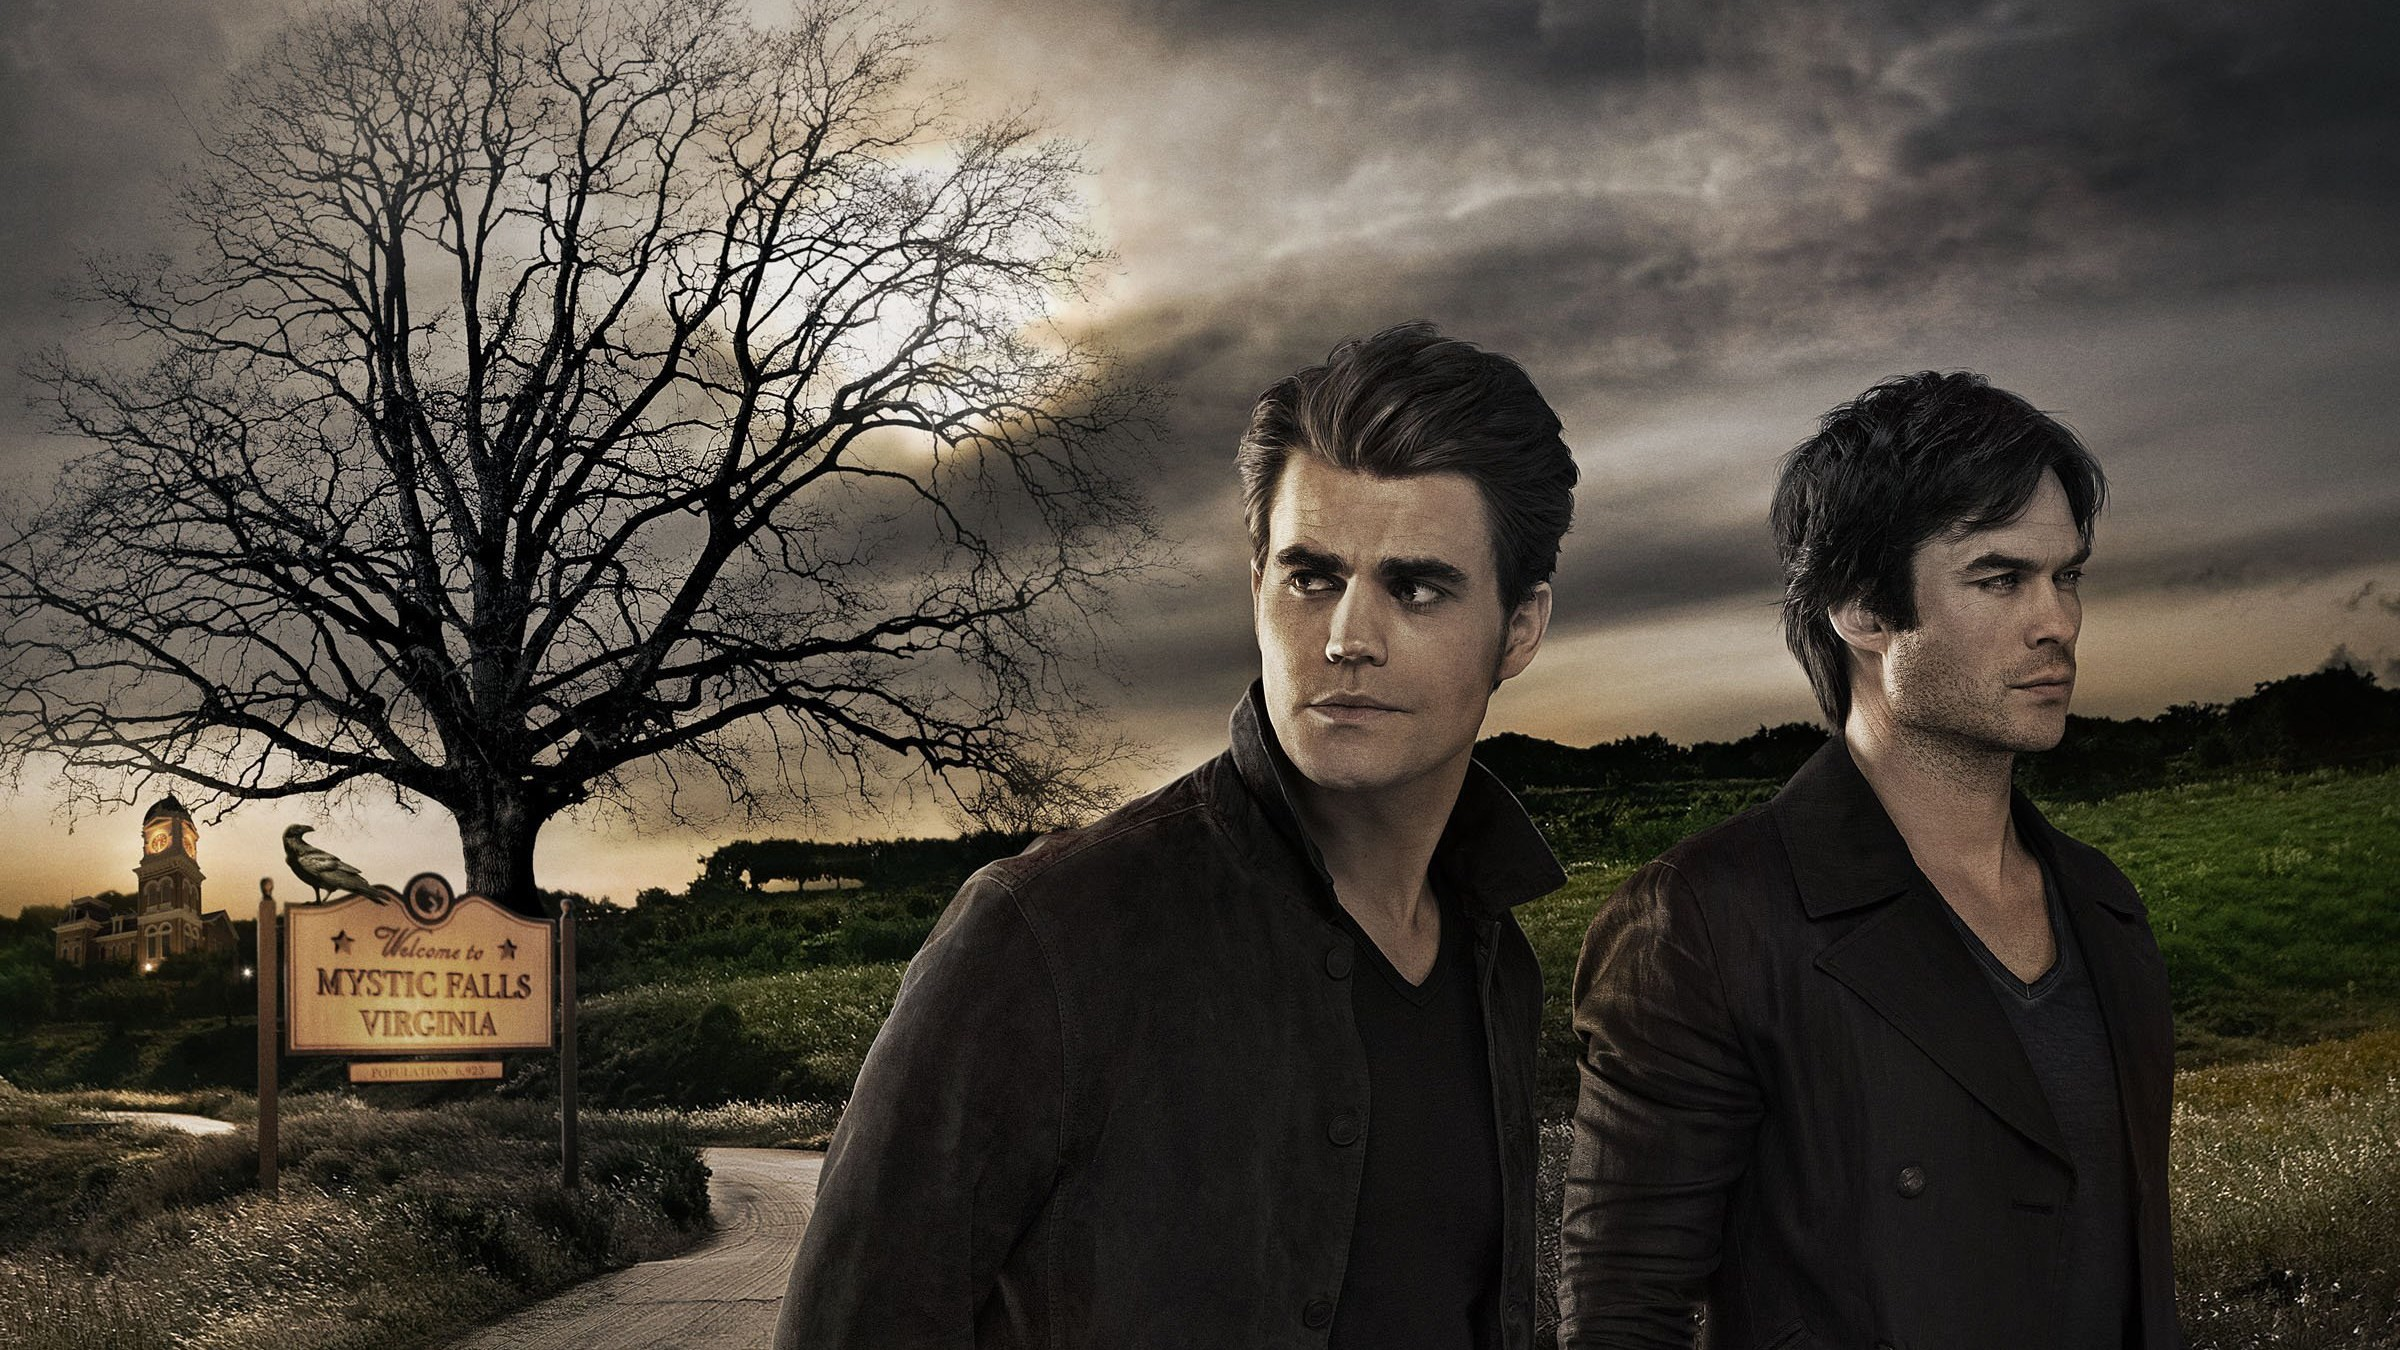 the vampire The new york times bestselling vampire diaries books, and the hit cw tv show that the book series inspired, revolve around high school mortal elena gilbert and her epic love triangle with vampire brothers stefan and damon salvatore.